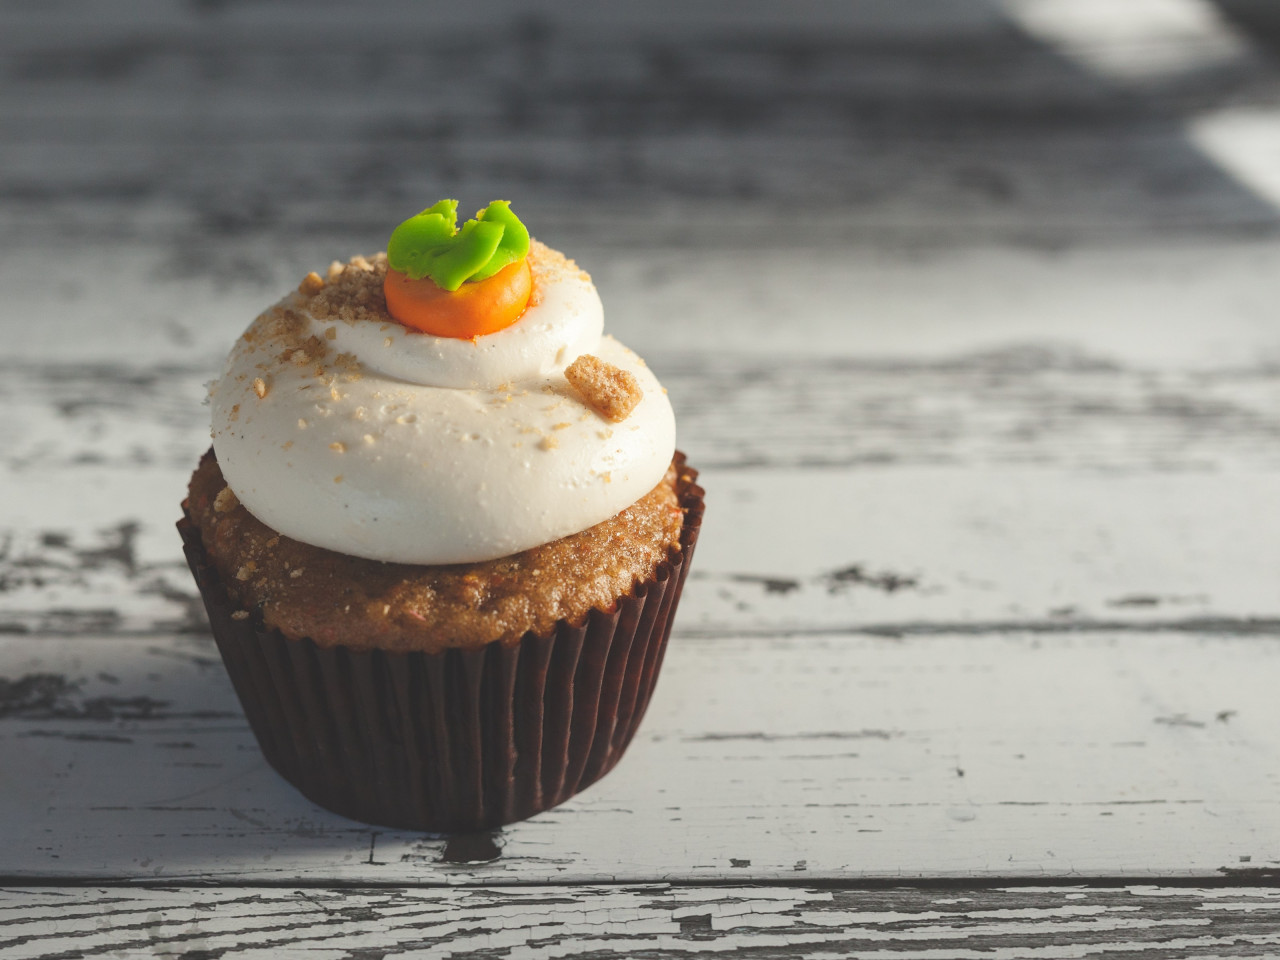 Muffin with cream wallpaper 1280x960